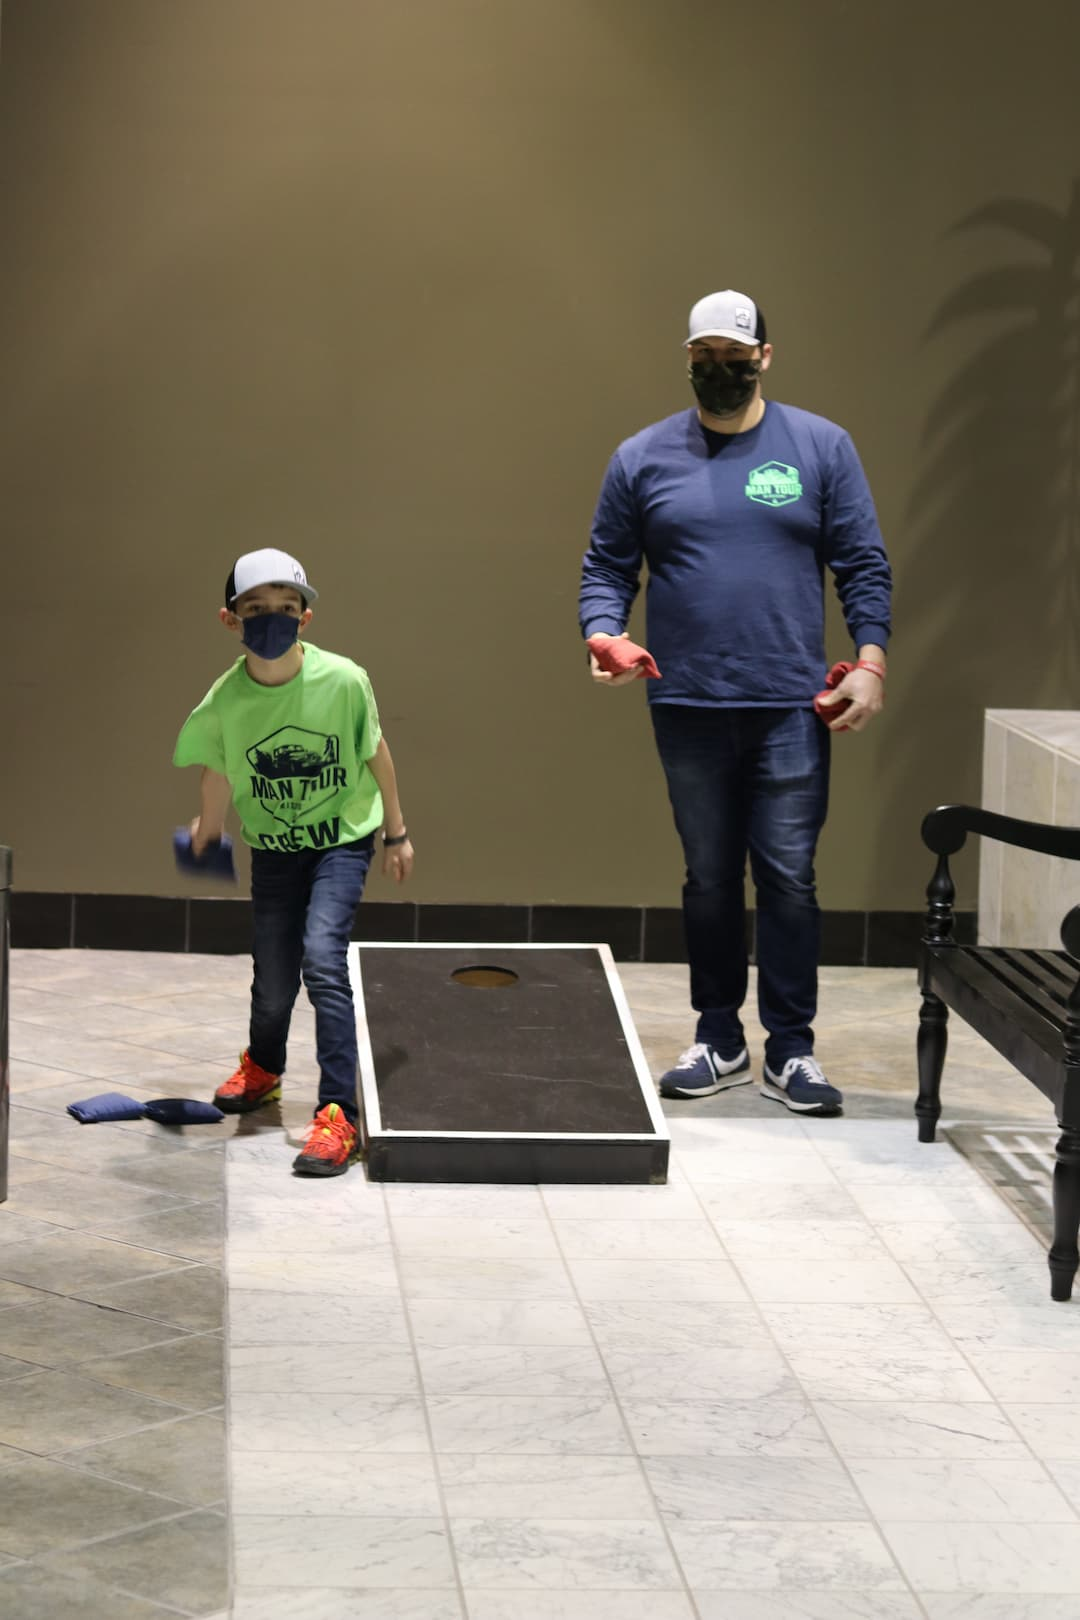 Father son playing cornhole at men's ministries event